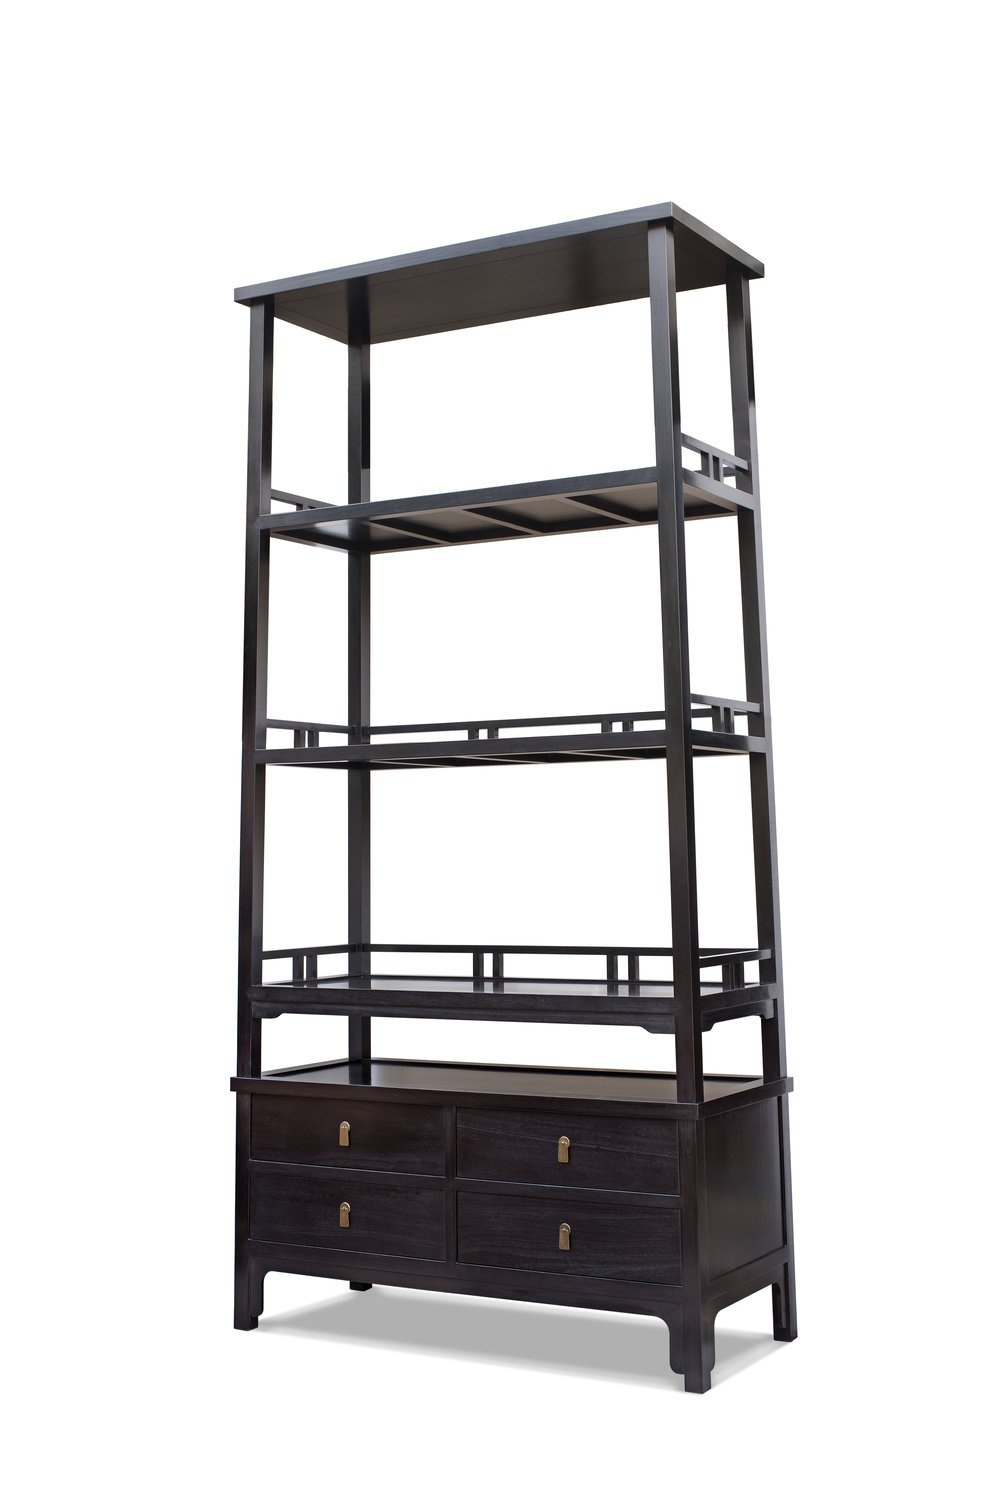 ....chinese ming style furniture | mandarin oriental compound shelf..中式明式家具 | 组合书架....